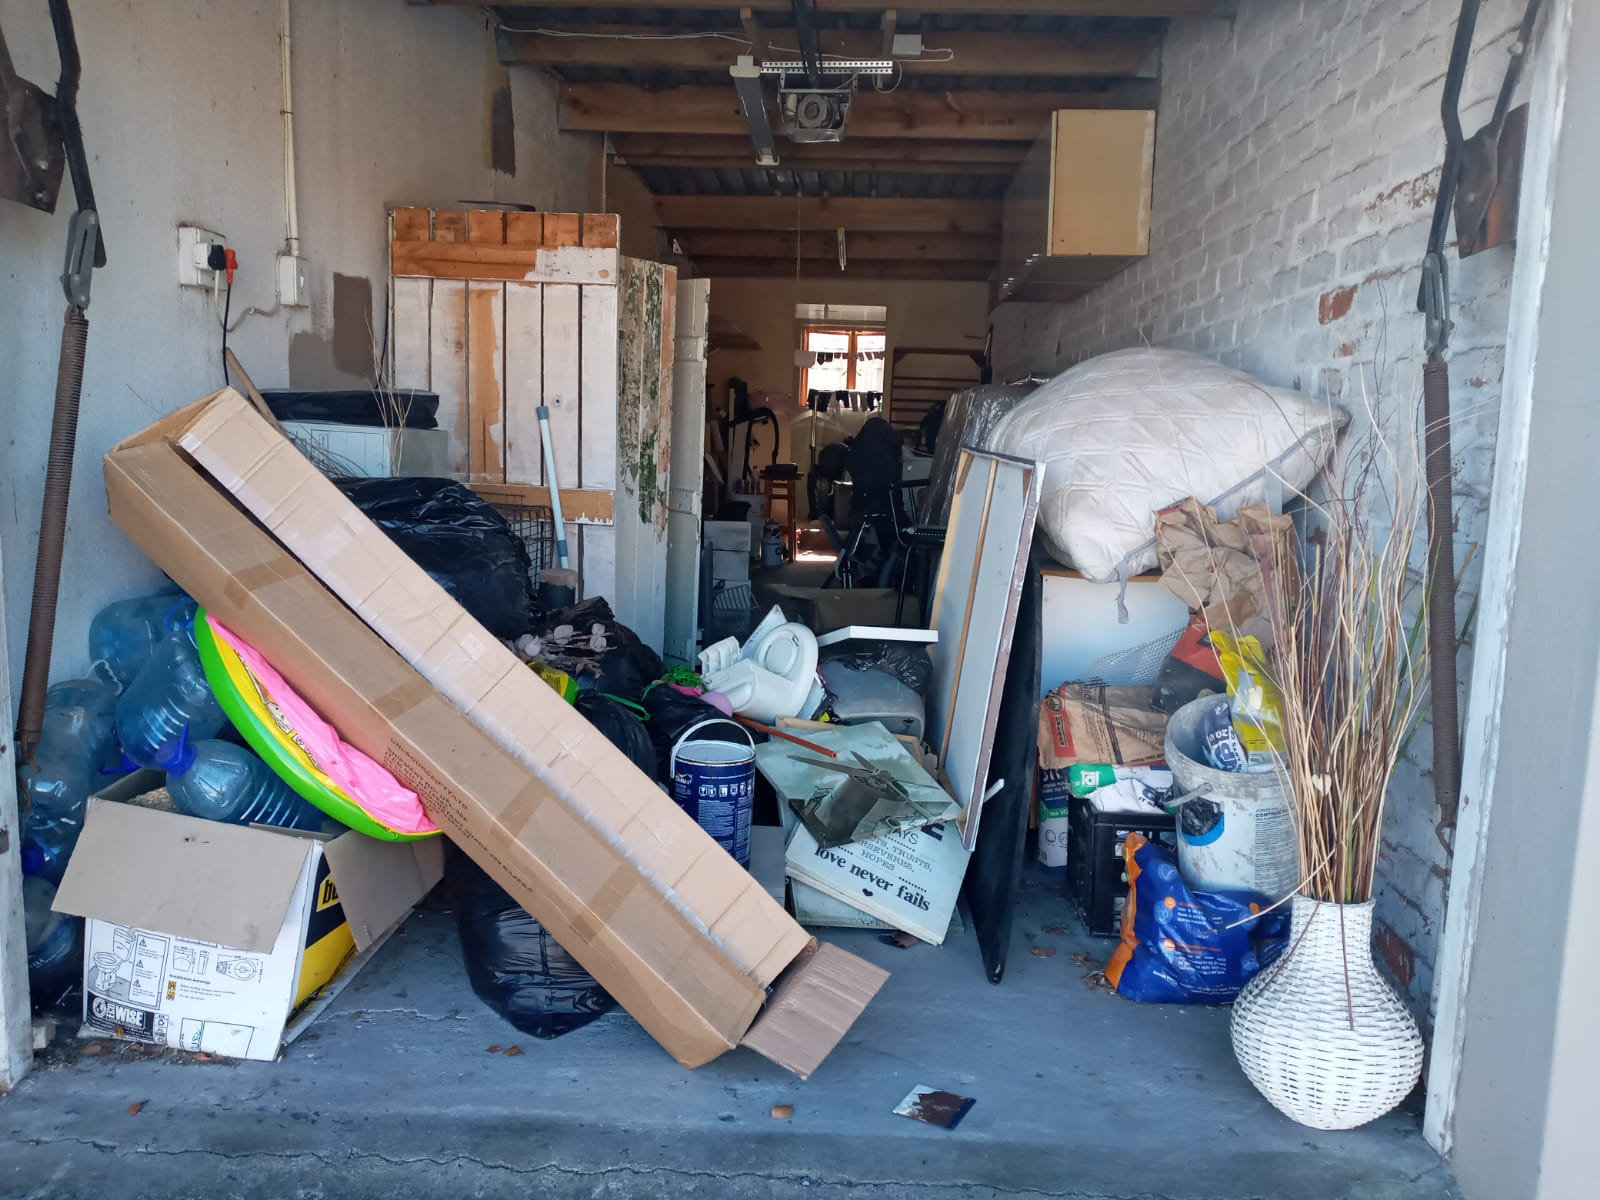 Junk Removal from Homes and Business